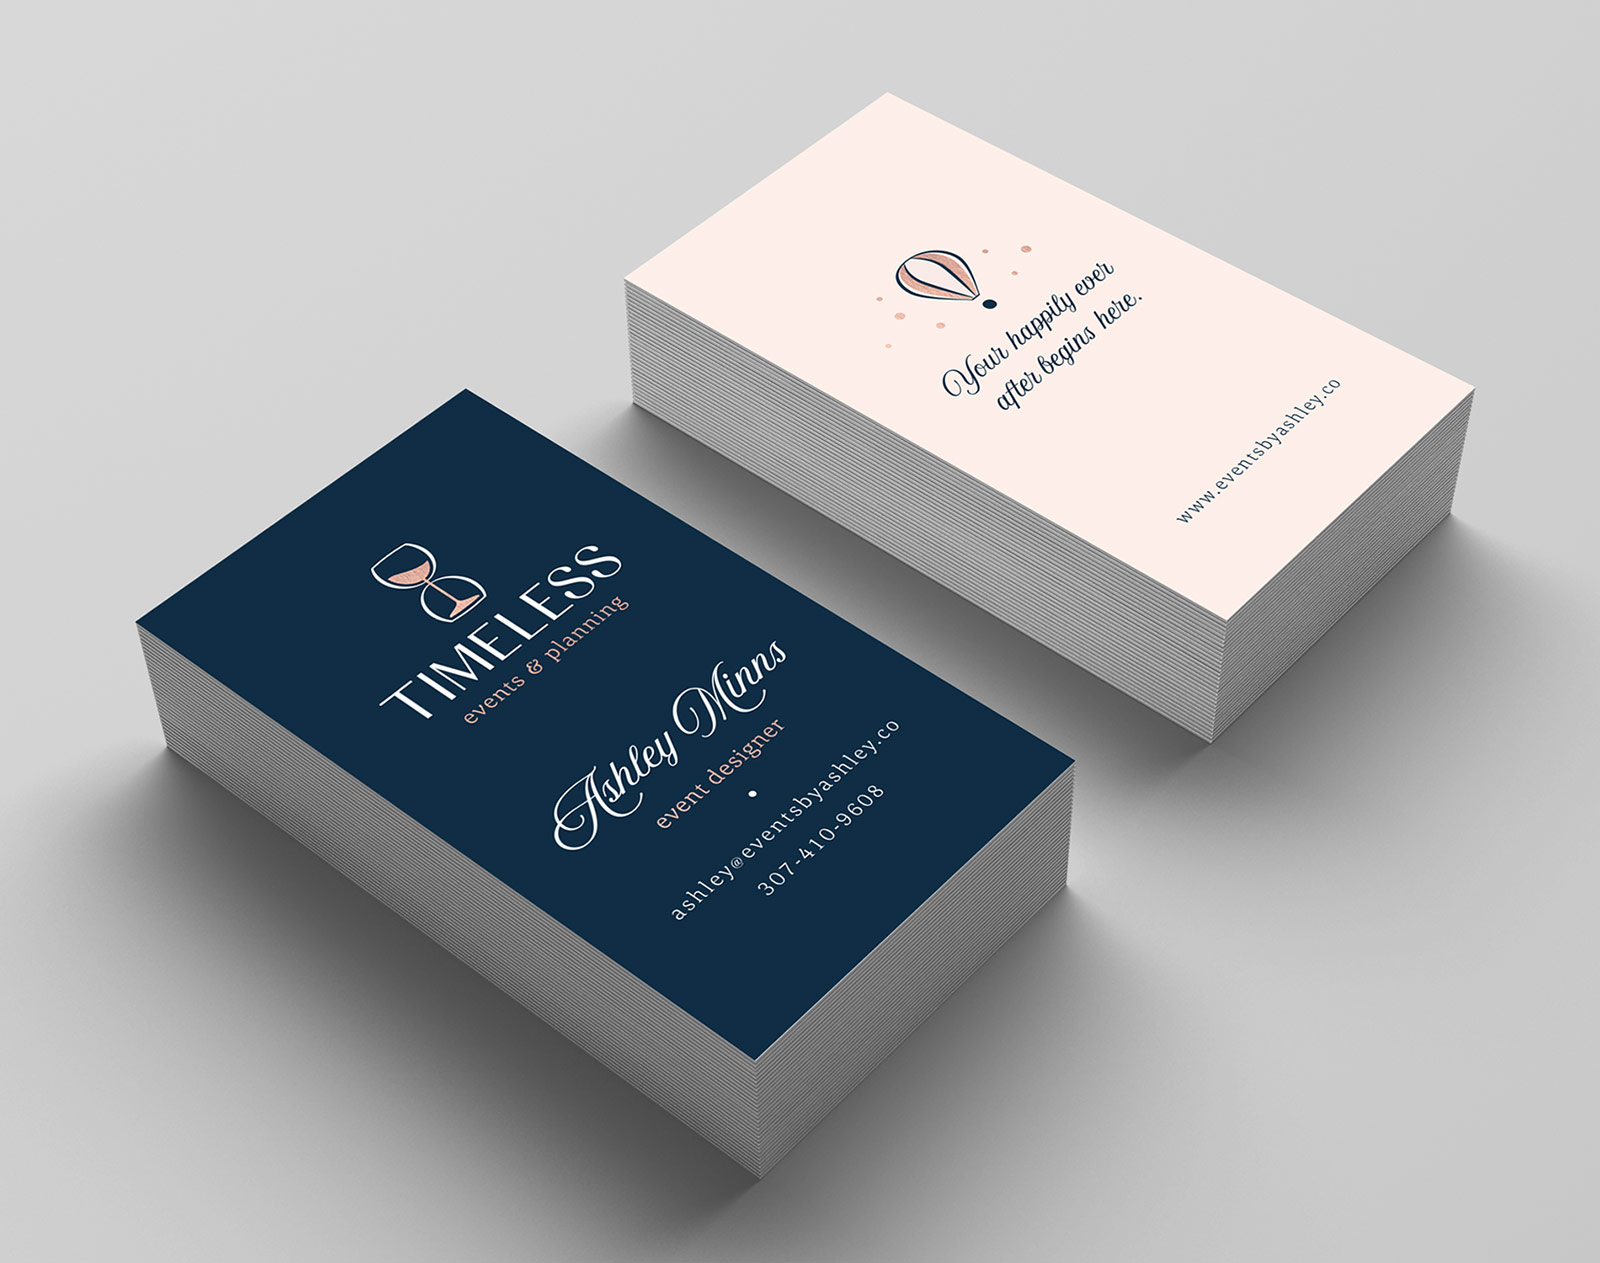 Timeless Events & Planning - business card design